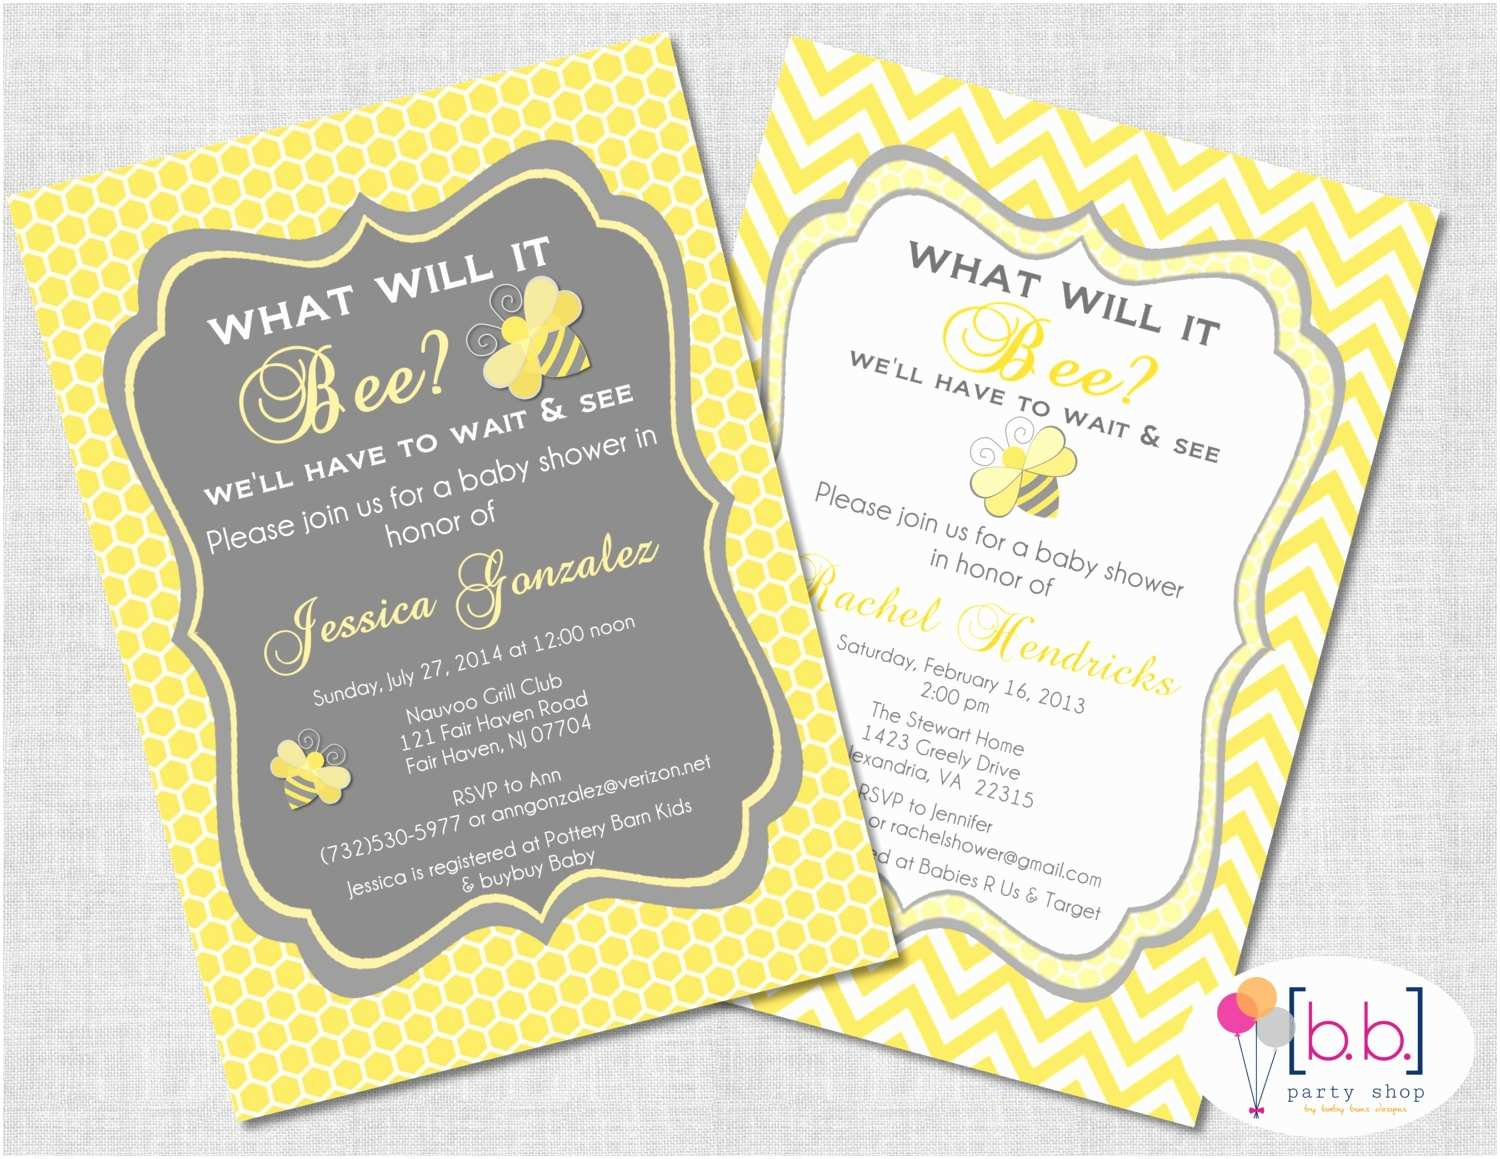 Bee Baby Shower Invitations Bee What Will It Bee Baby Shower or Gender Reveal Invitation